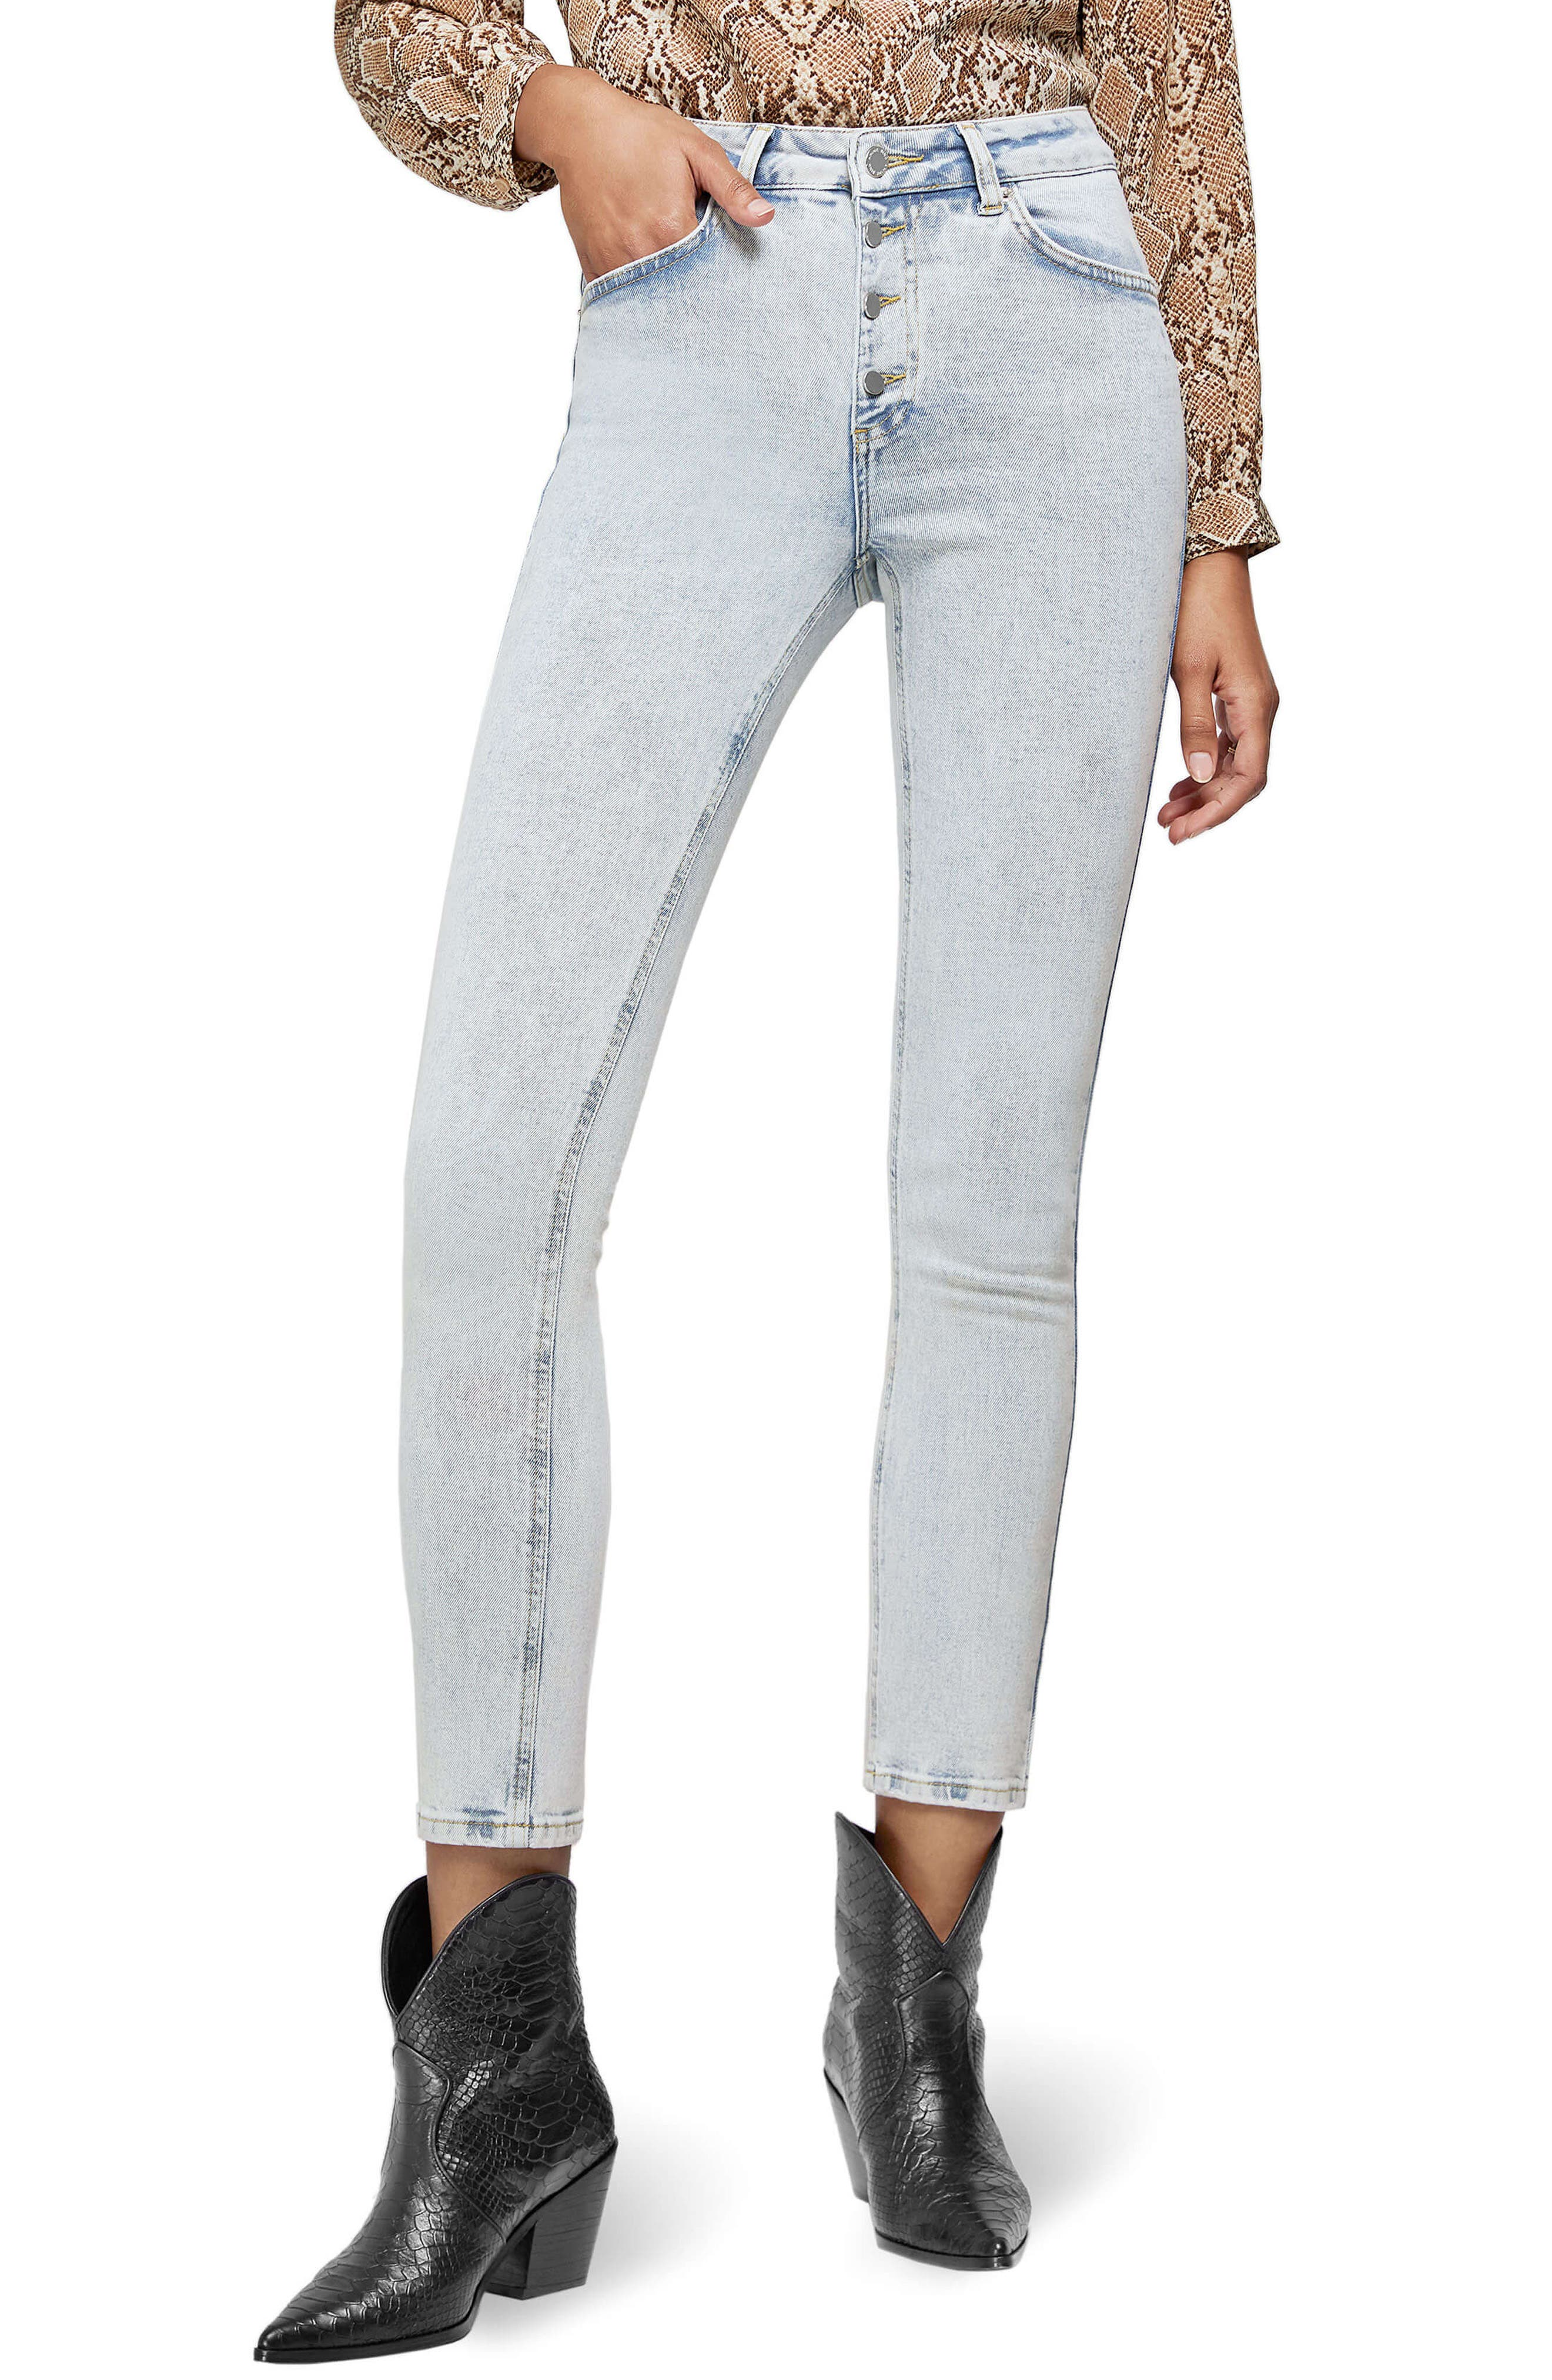 Anine Bing Jeans Frida Button Fly Jeans